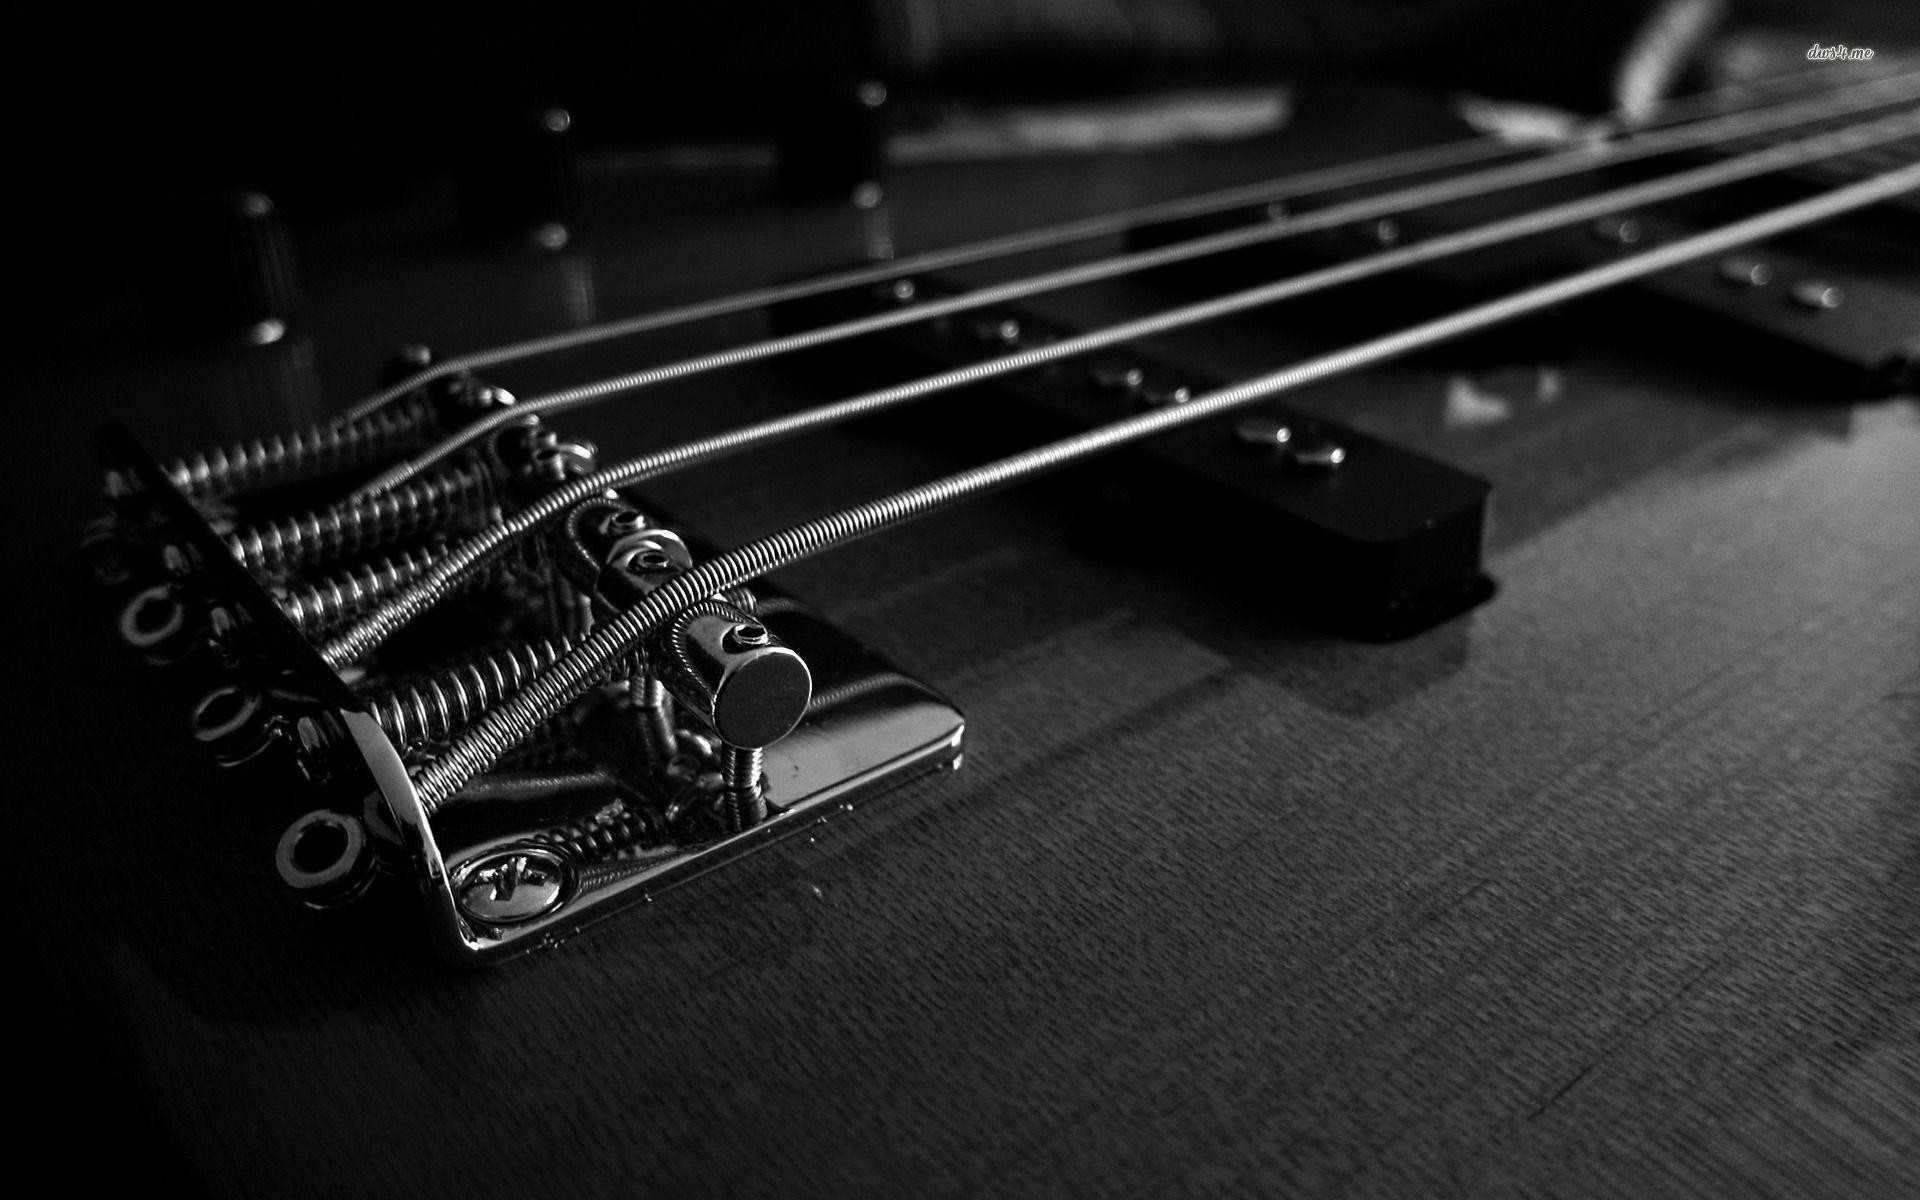 Bass Guitar Wallpaper Wallpapertag: HD Bass Guitar Wallpaper (67+ Images